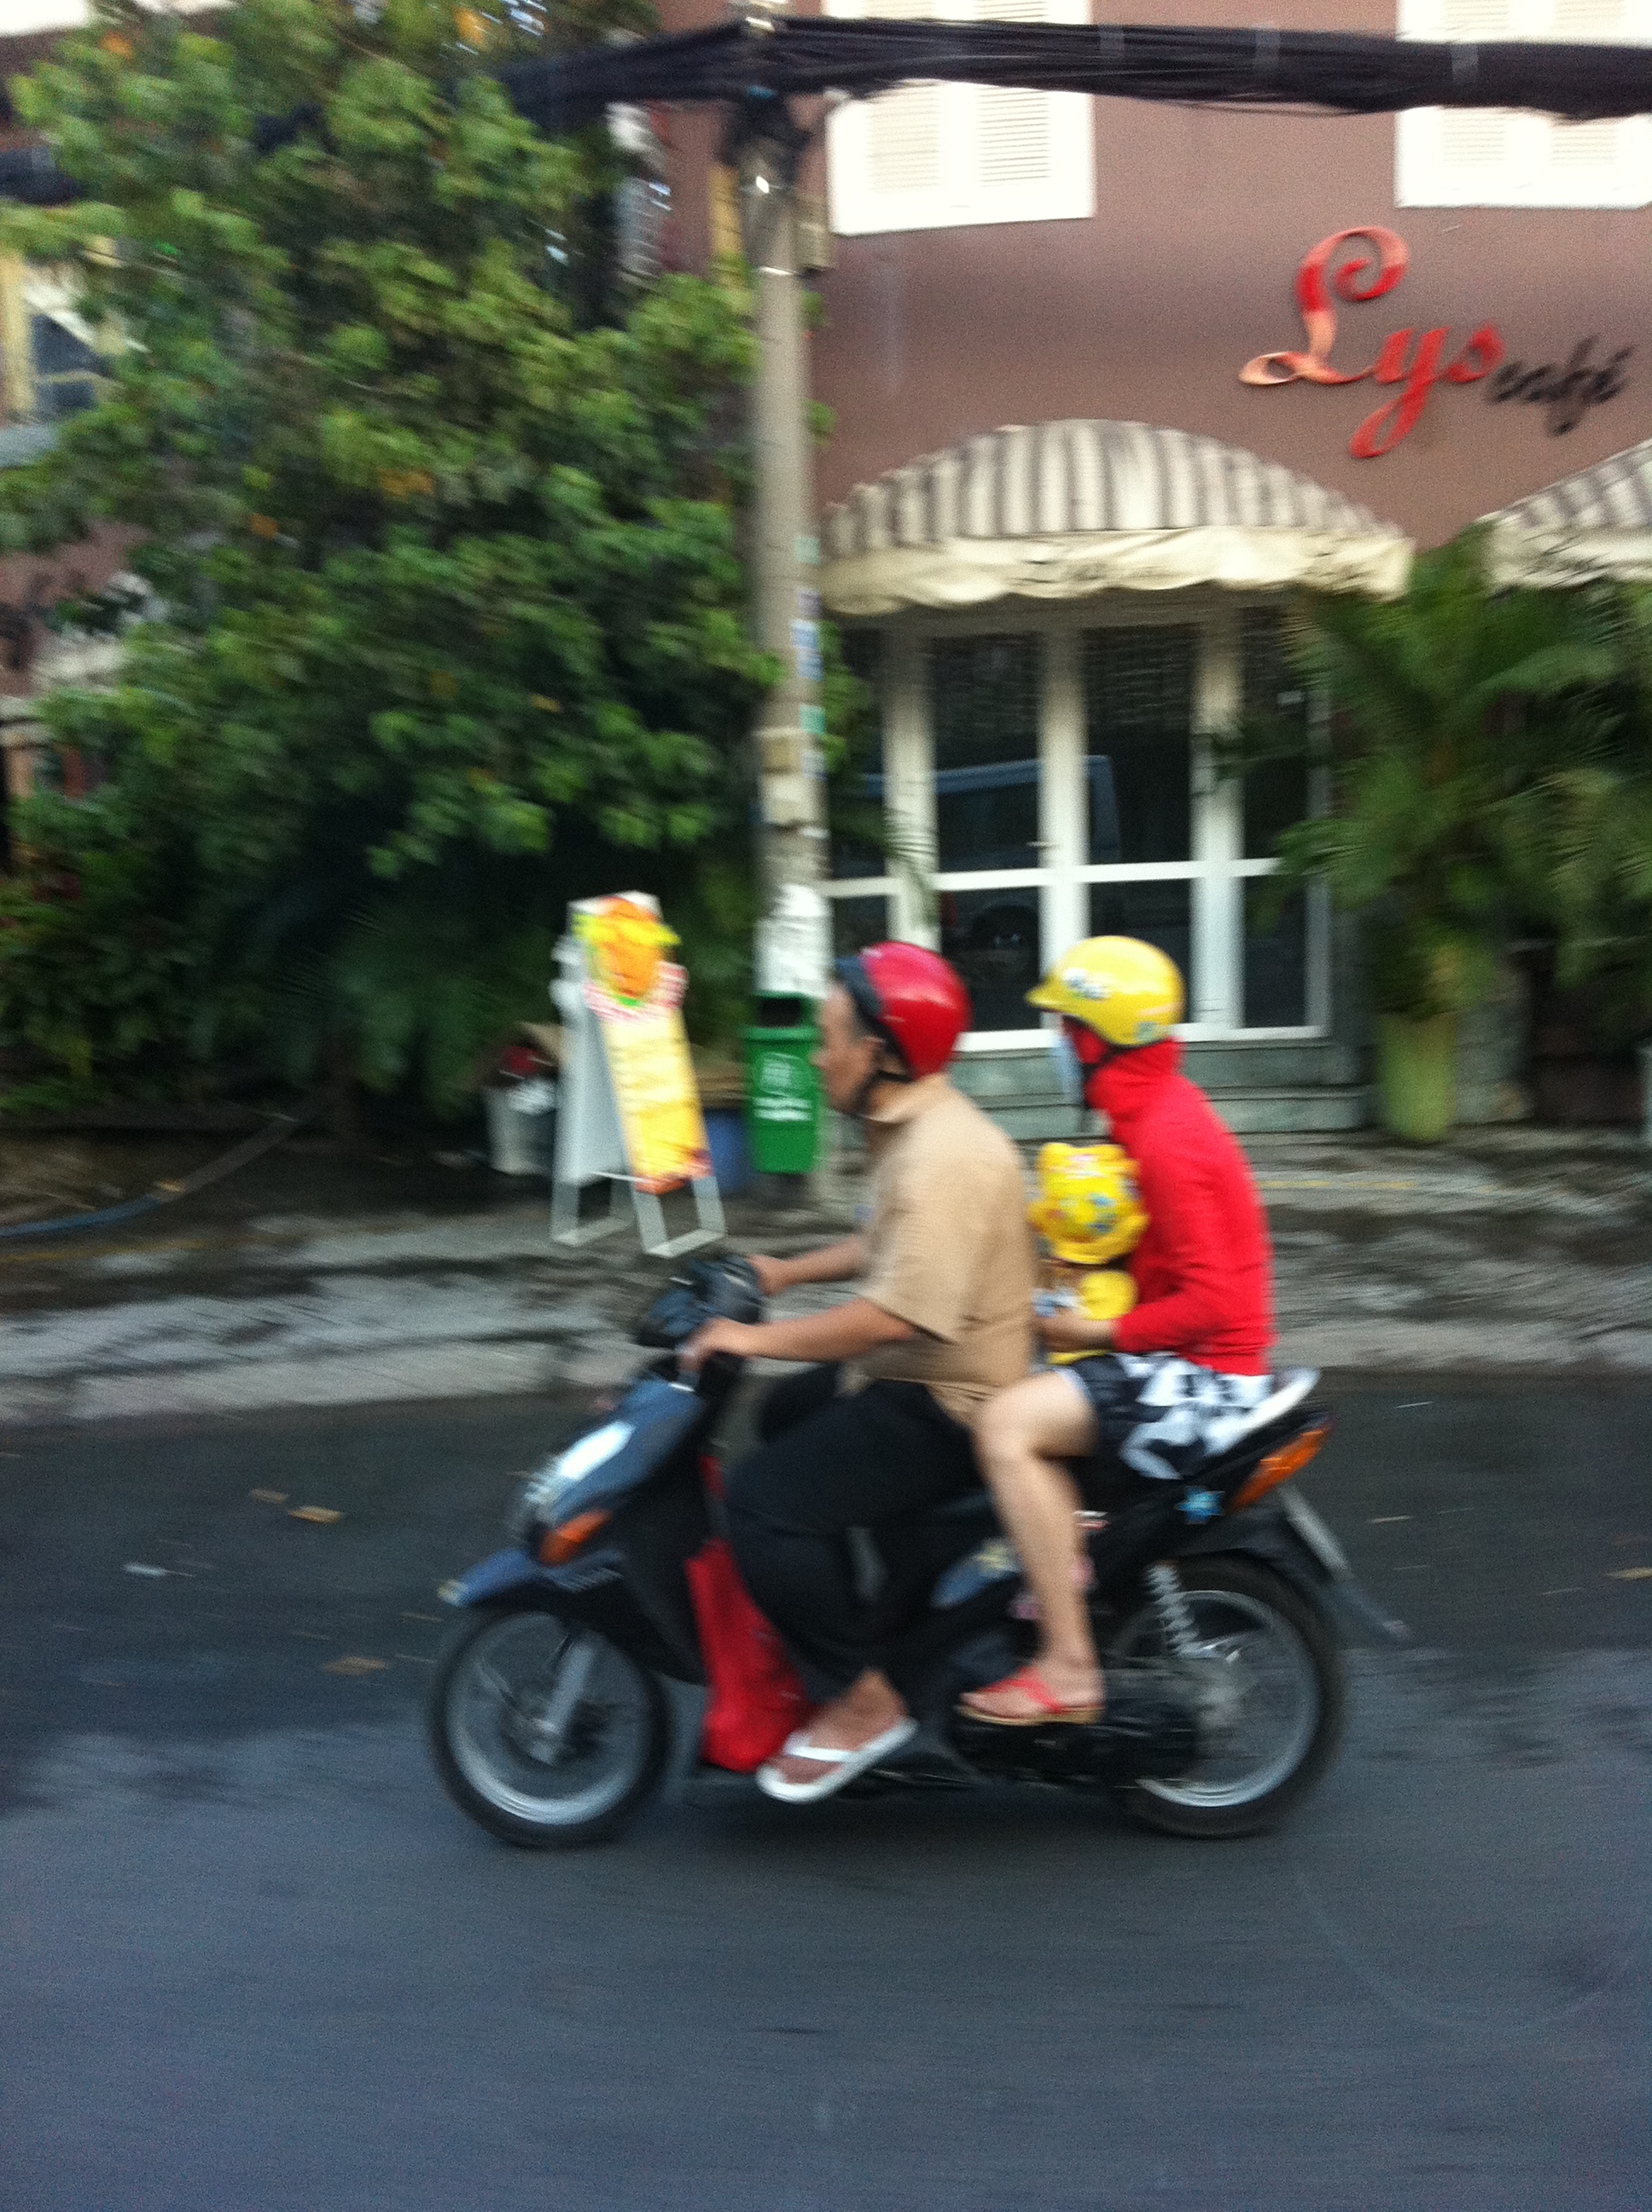 Family on motorbike Ho Chi Minh City